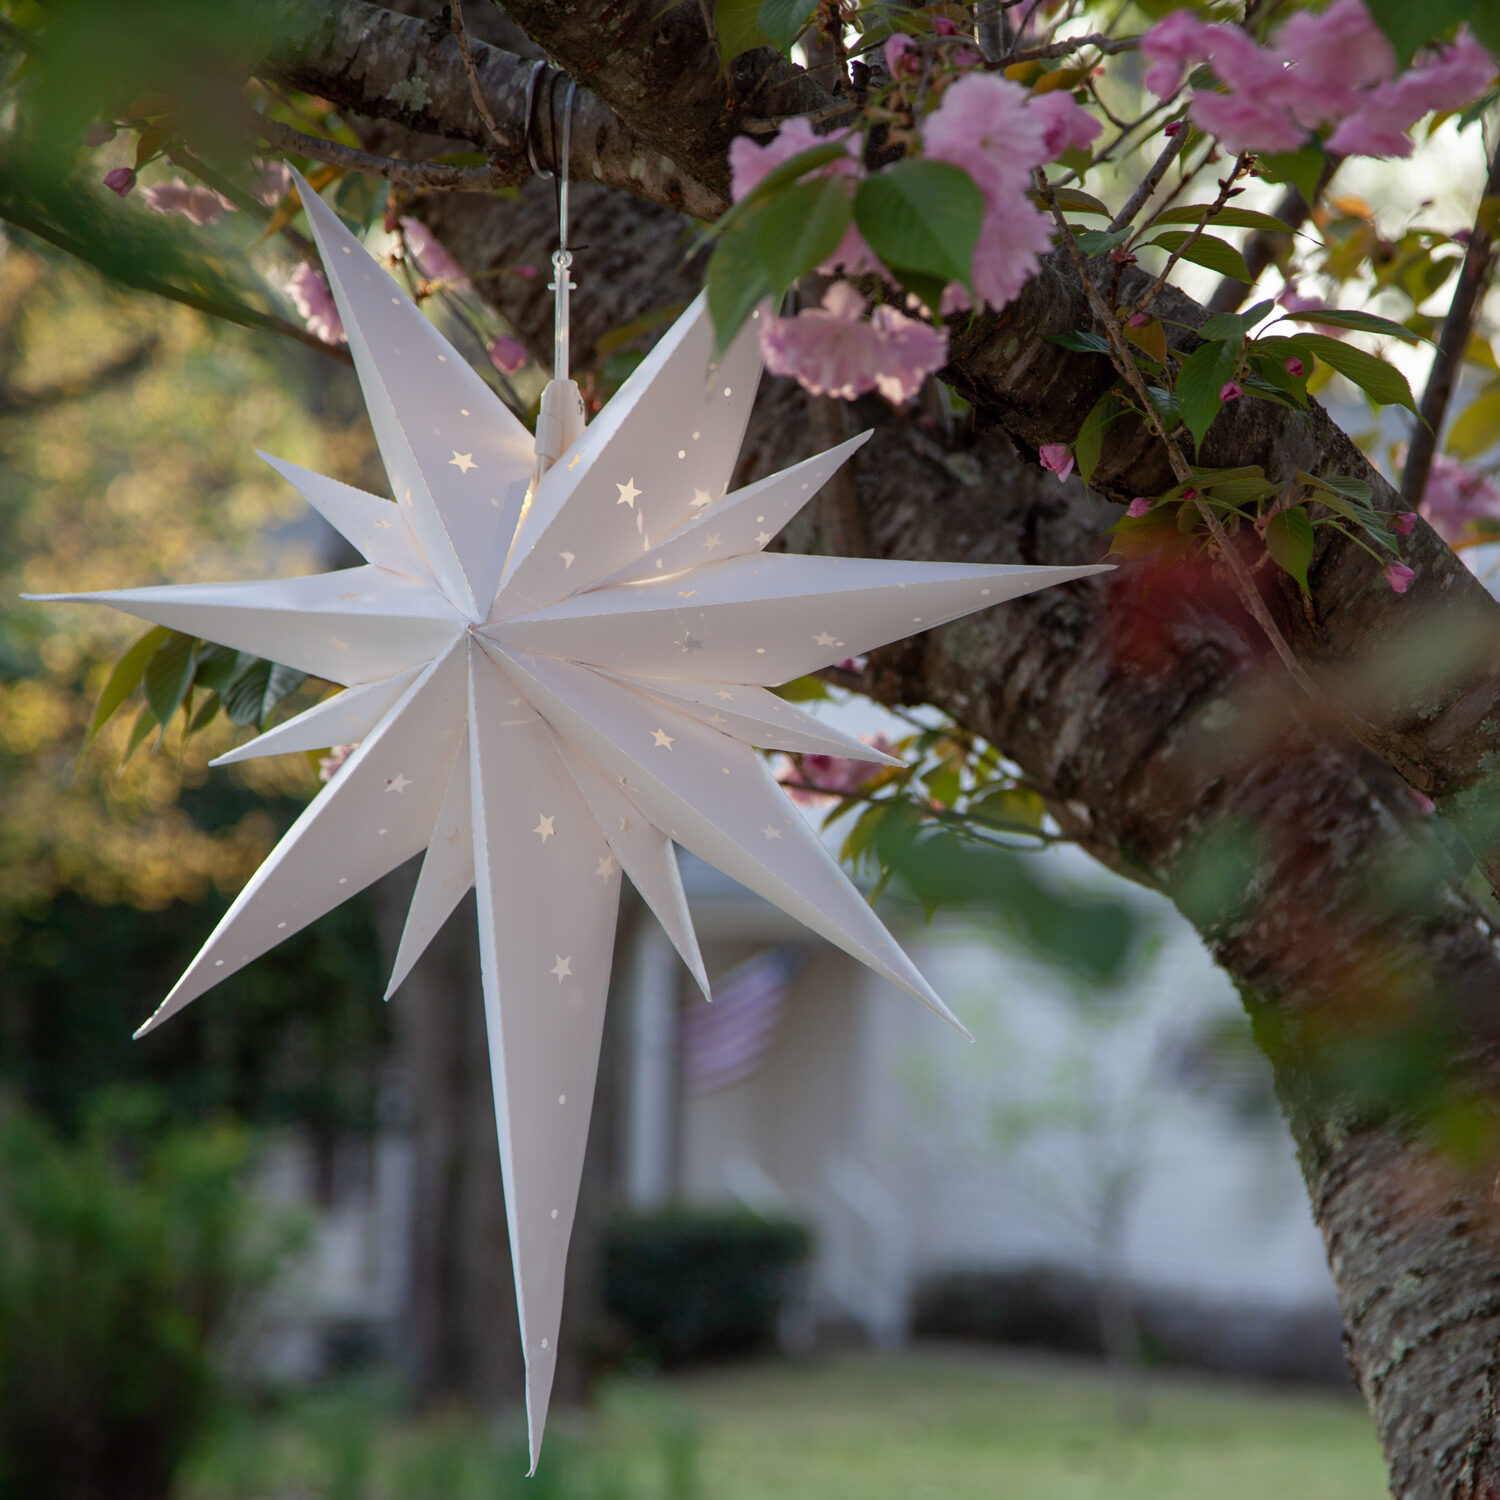 Star Decorations Hanging from Tree Branches